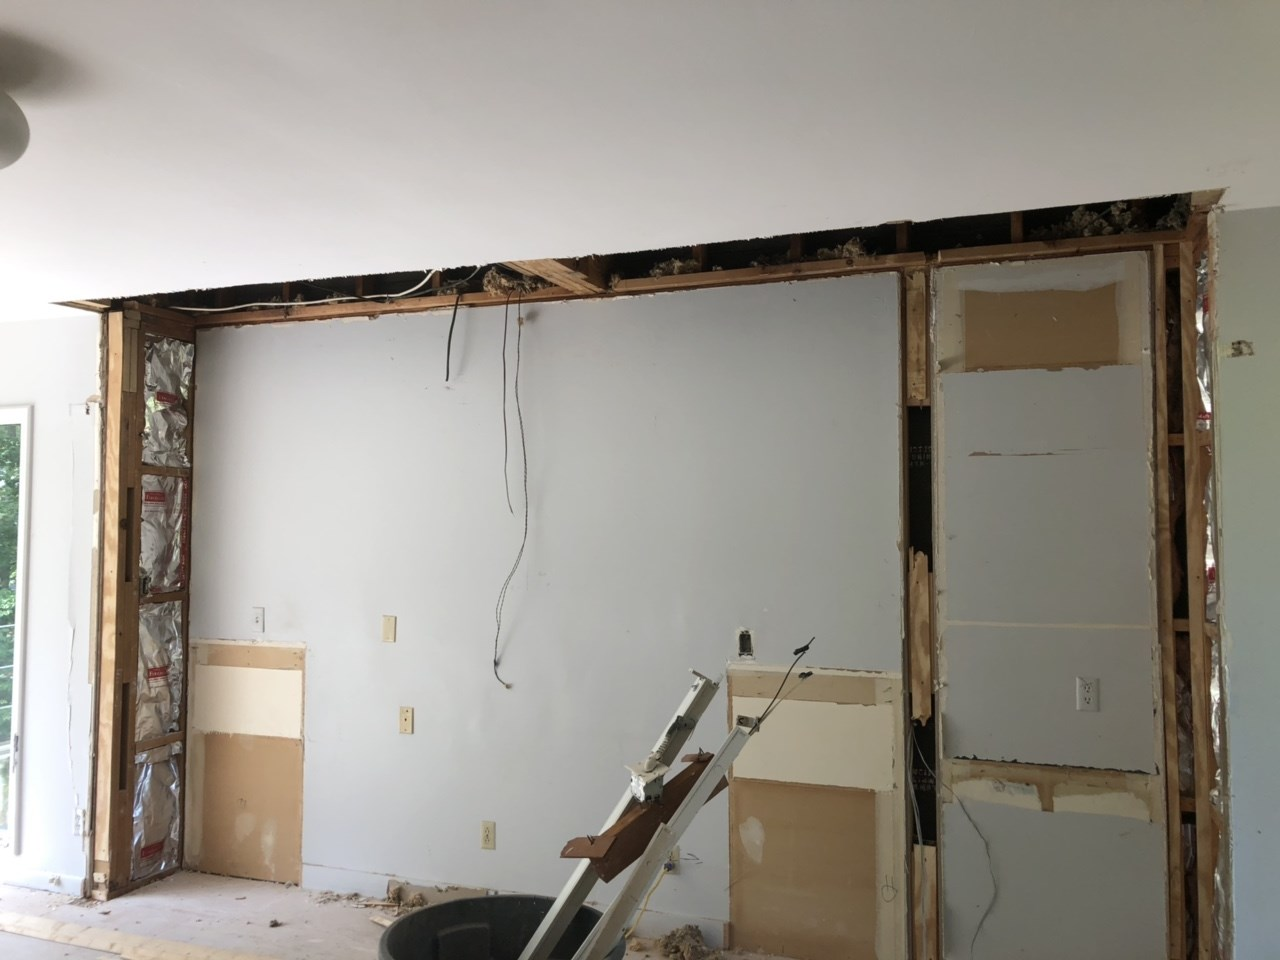 The builtin cabinets in the master bedroom have been removed. The wall will have cleaner lines when complete.